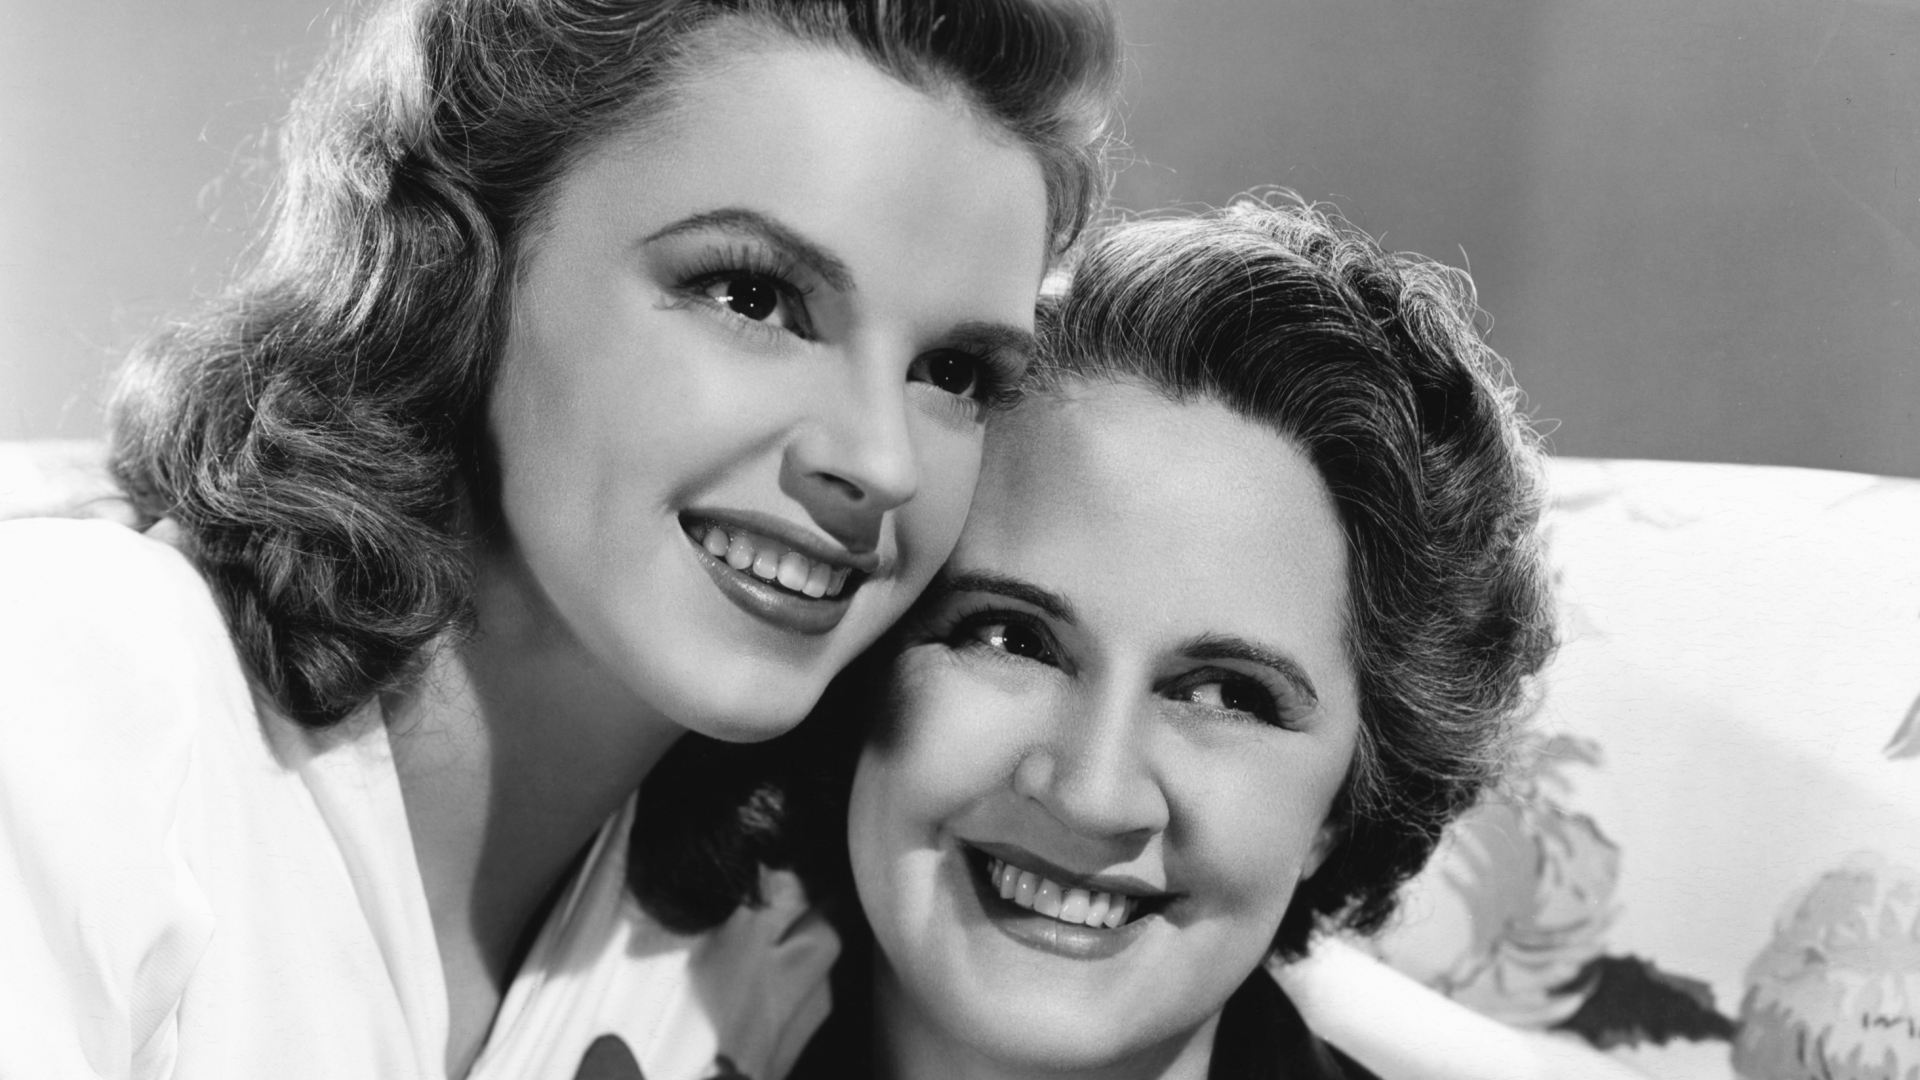 Judy Garland with her mother, Ethel. (Credit: Bettmann Archive/Getty Images)